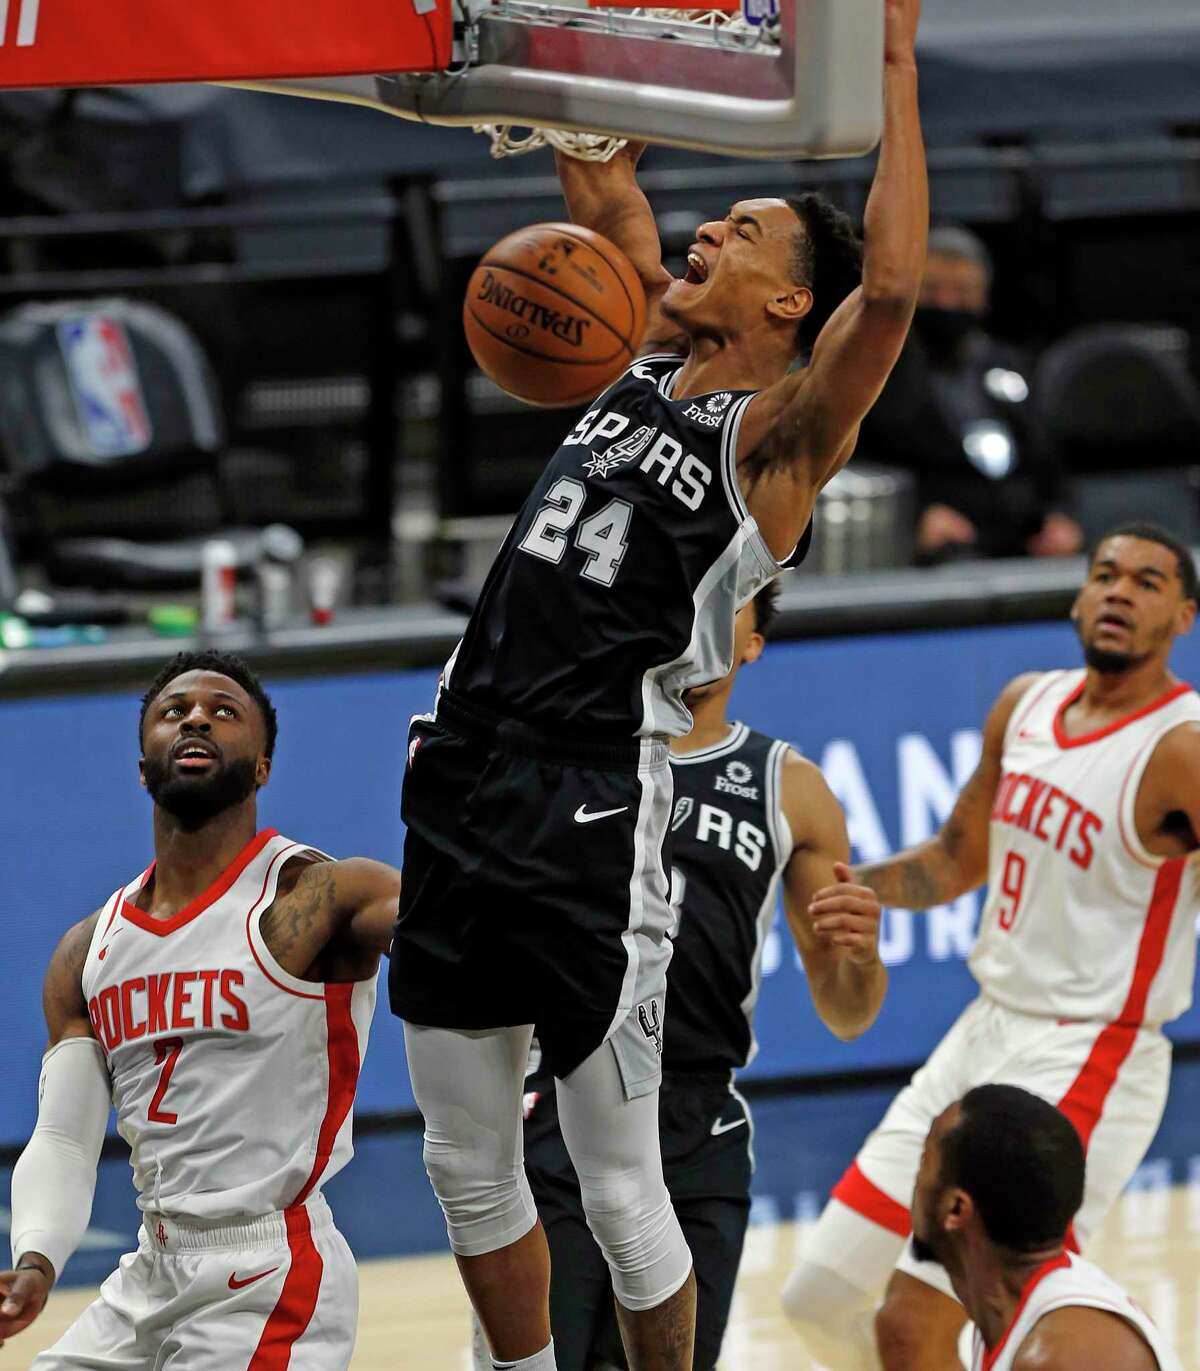 Spurs rookie Devin Vassell has made an immediate impact with his all-around game off the bench.